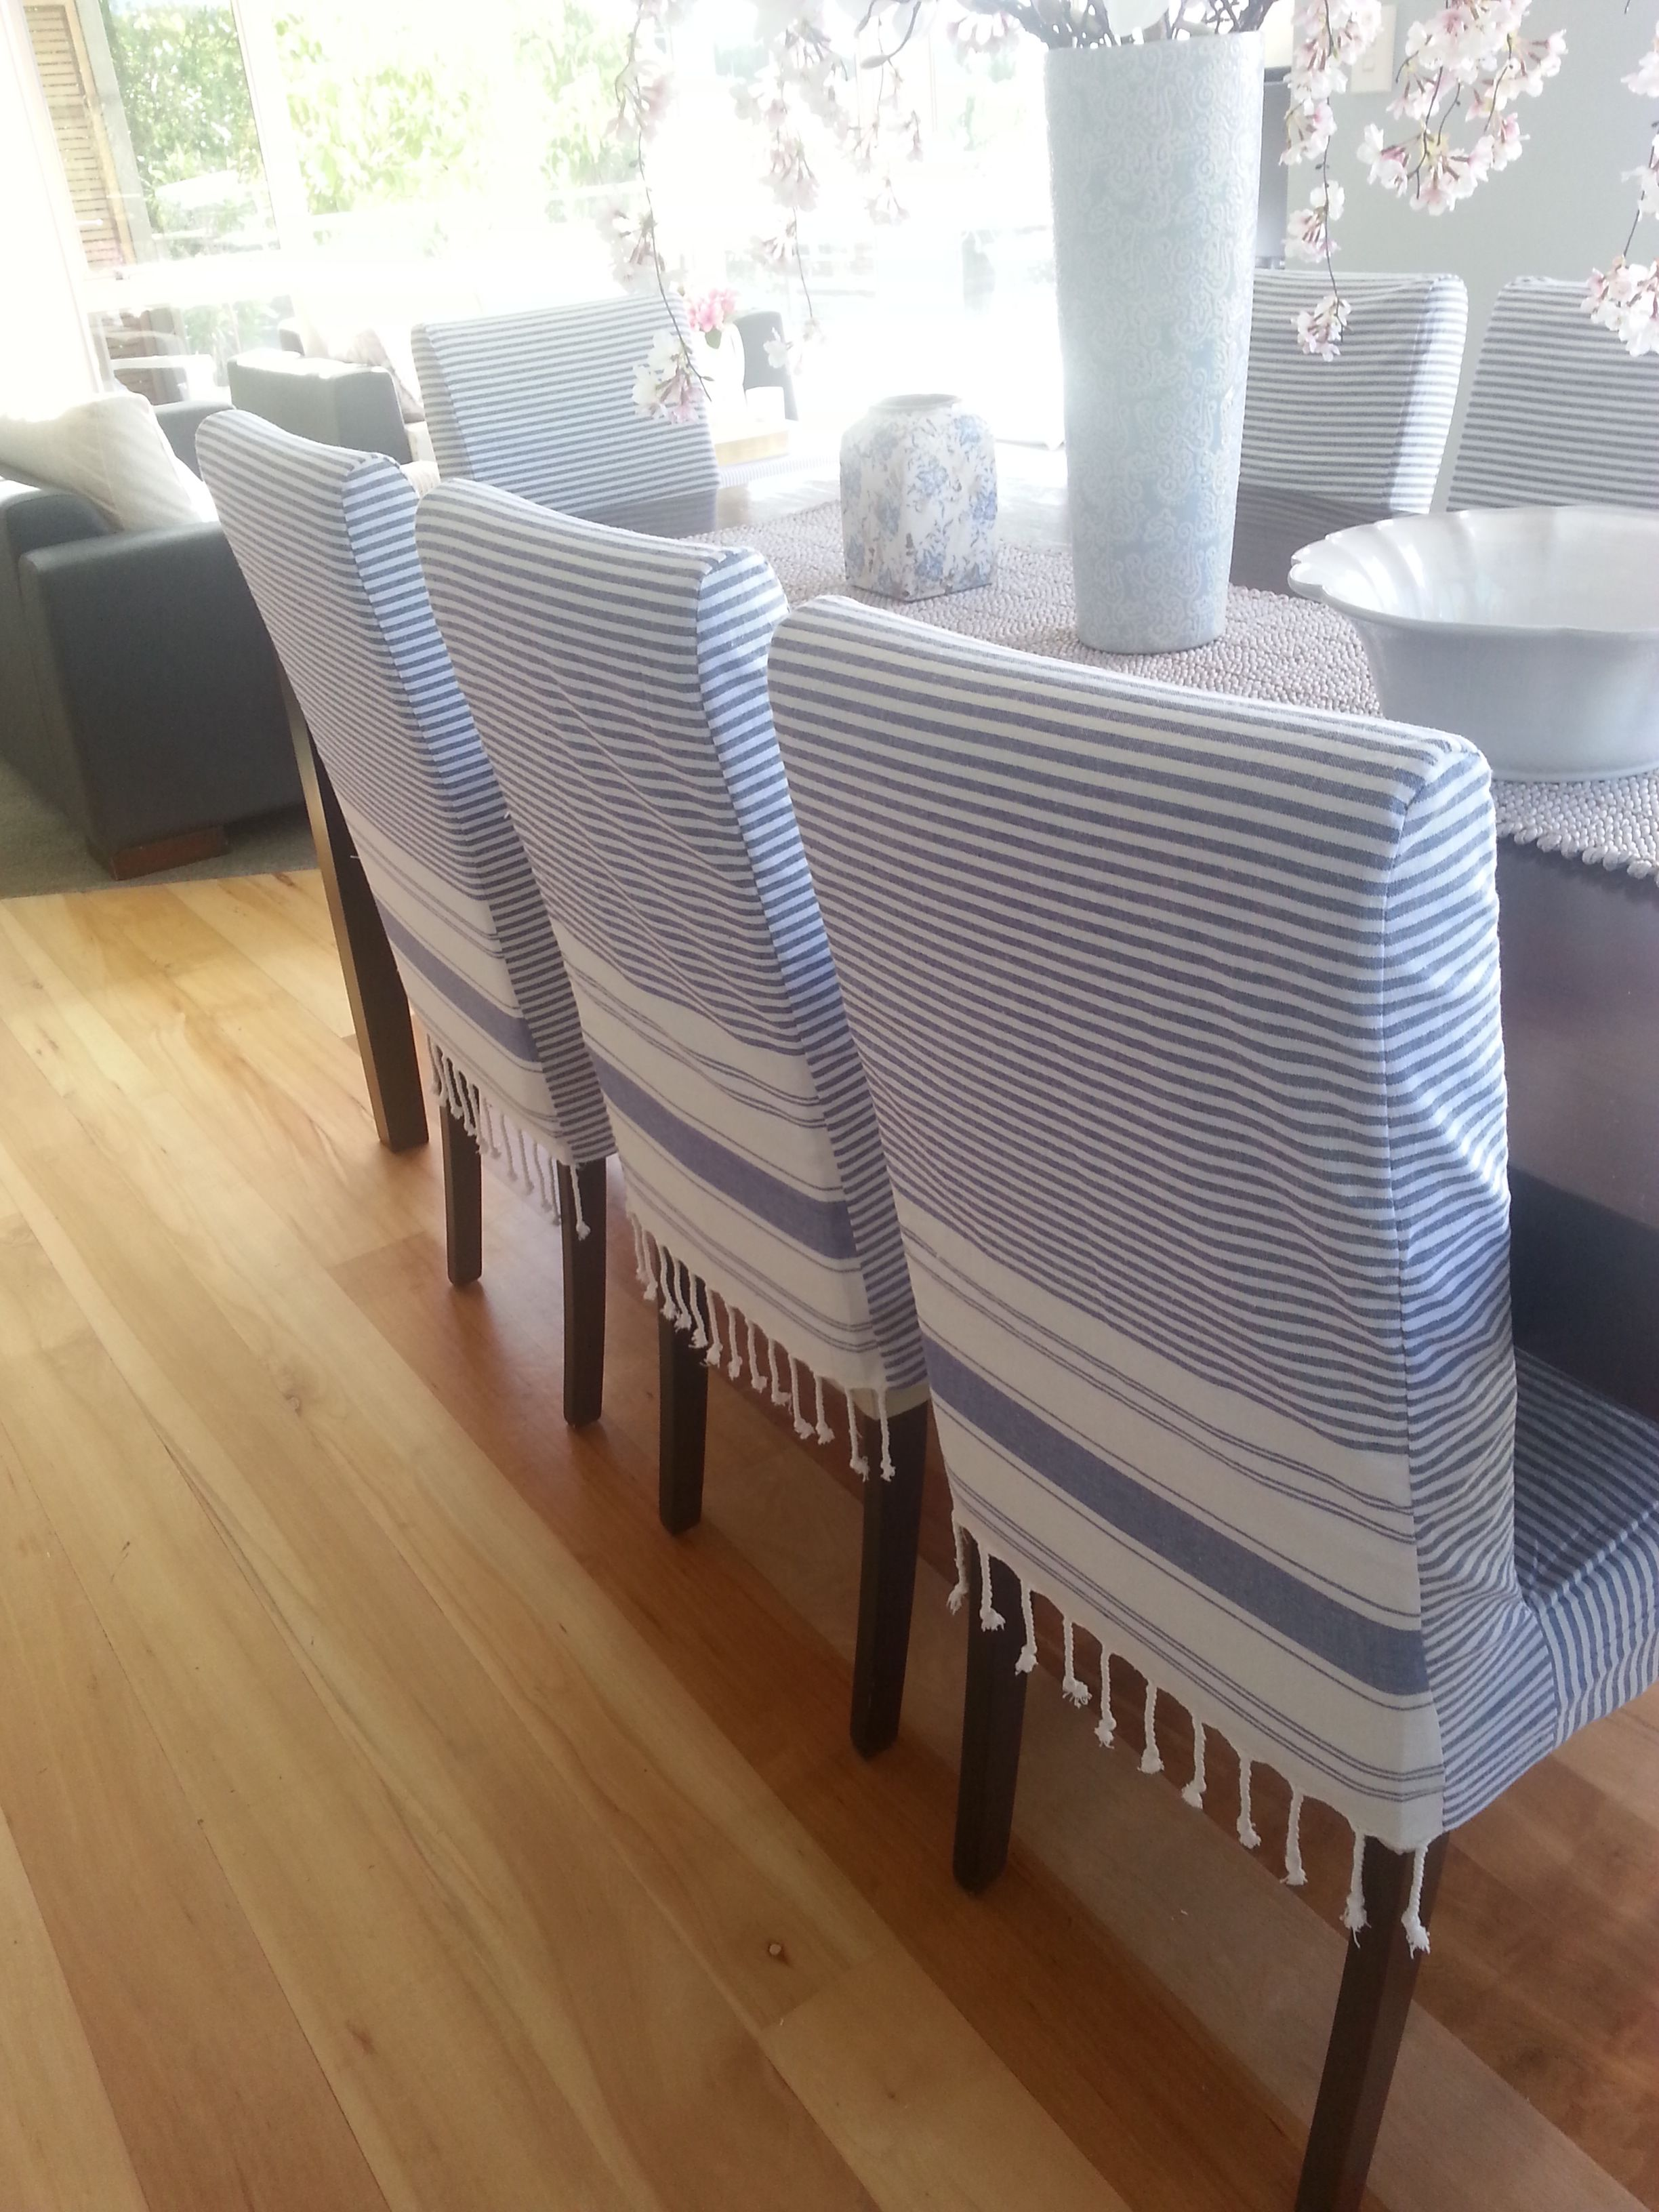 Dining Chair Covers Dining chair covers, Slipcovers for